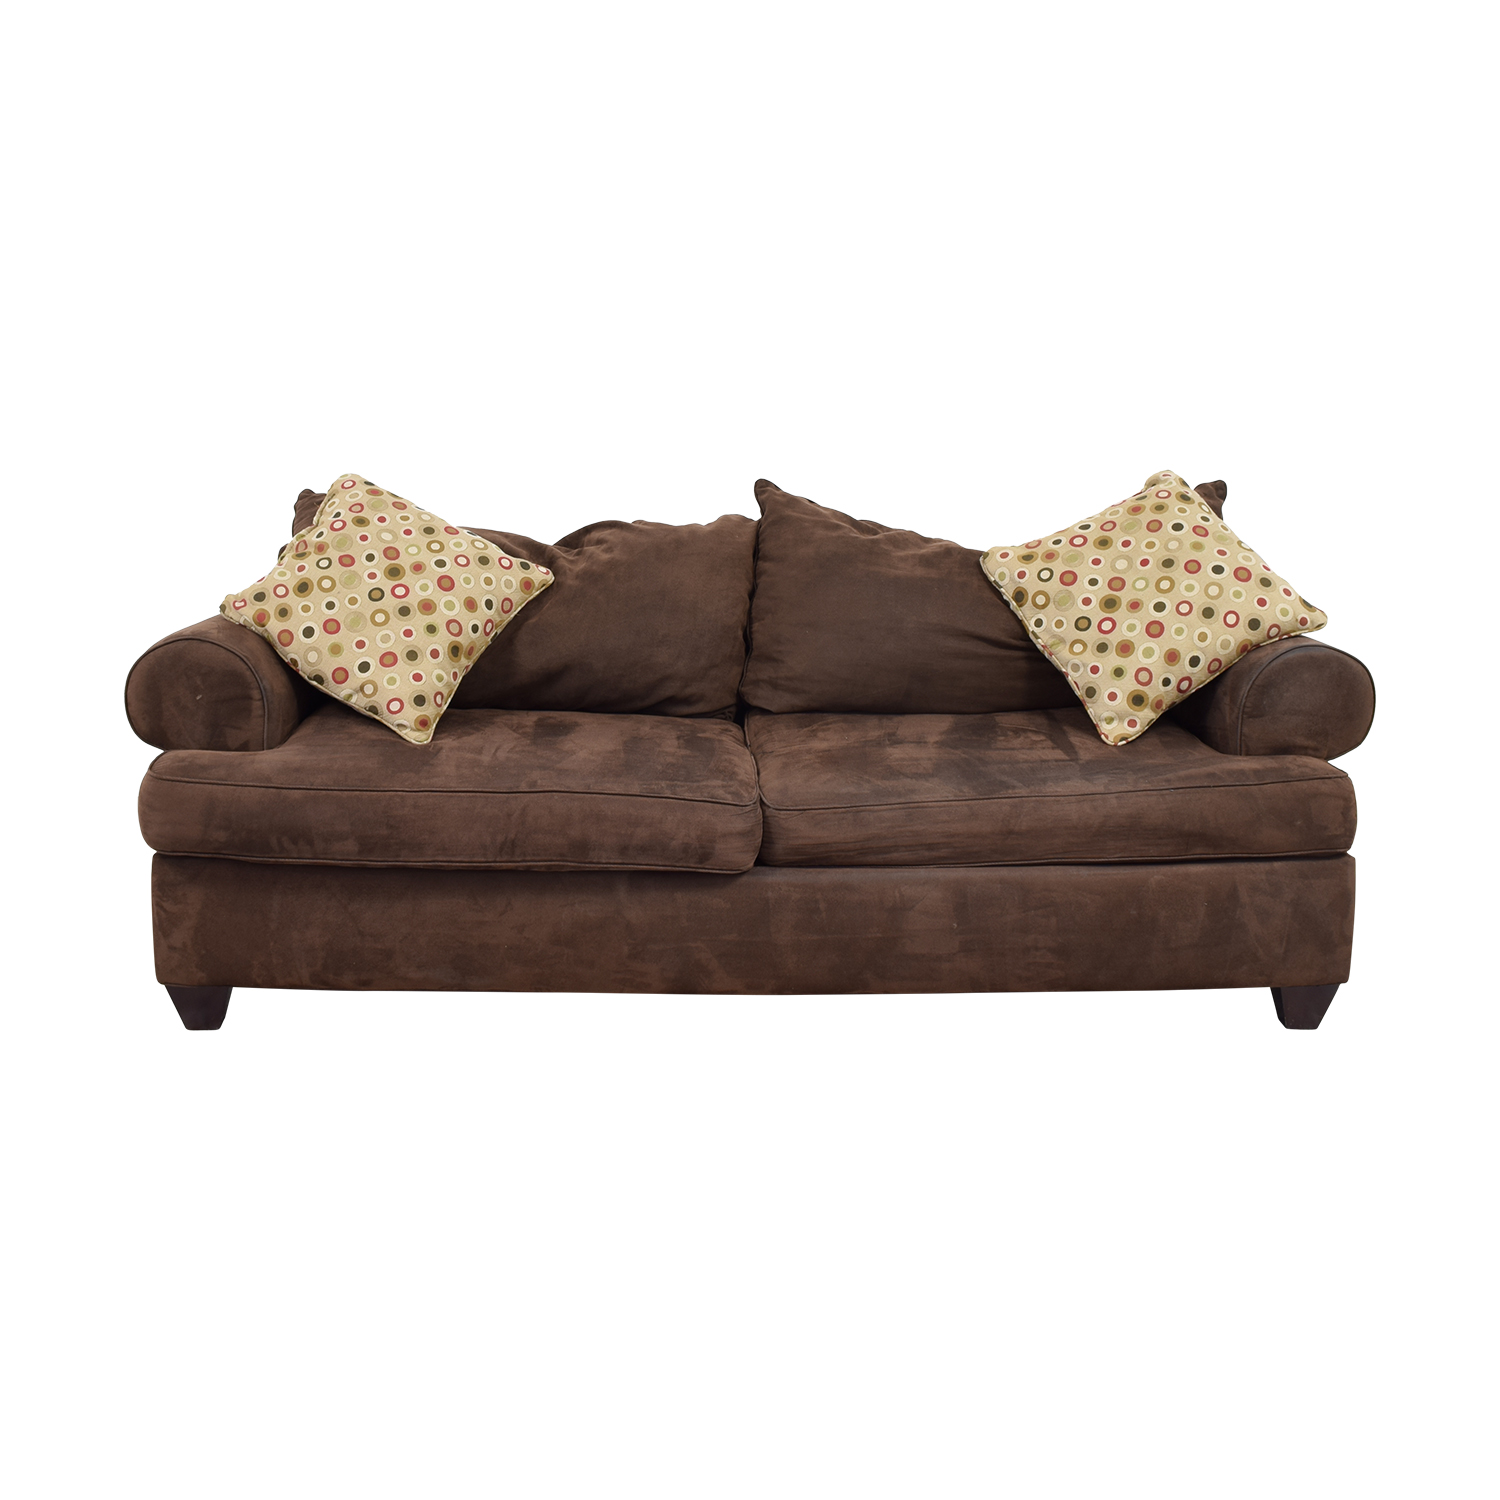 buy Raymour & Flanigan Brown Two-Cushion Sofa with Pillows Raymour and Flanigan Sofas